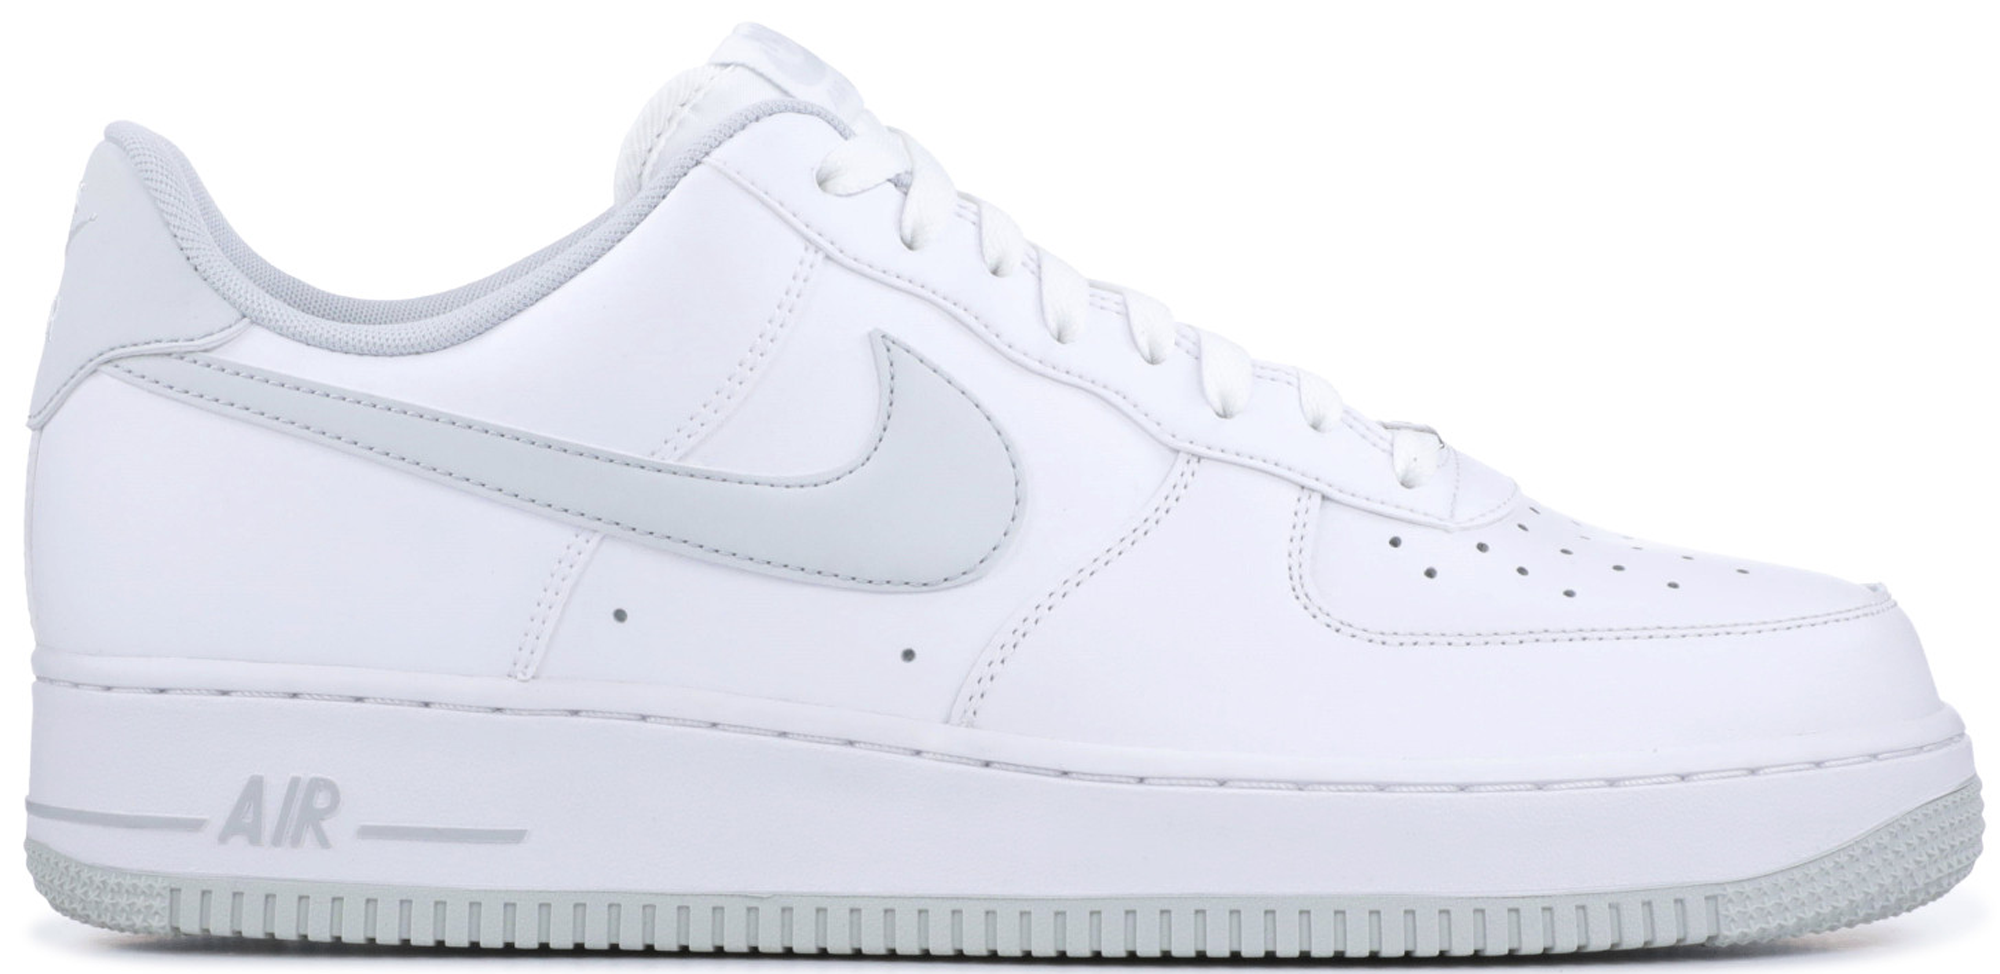 Nike Air Force 1 Low White Pure